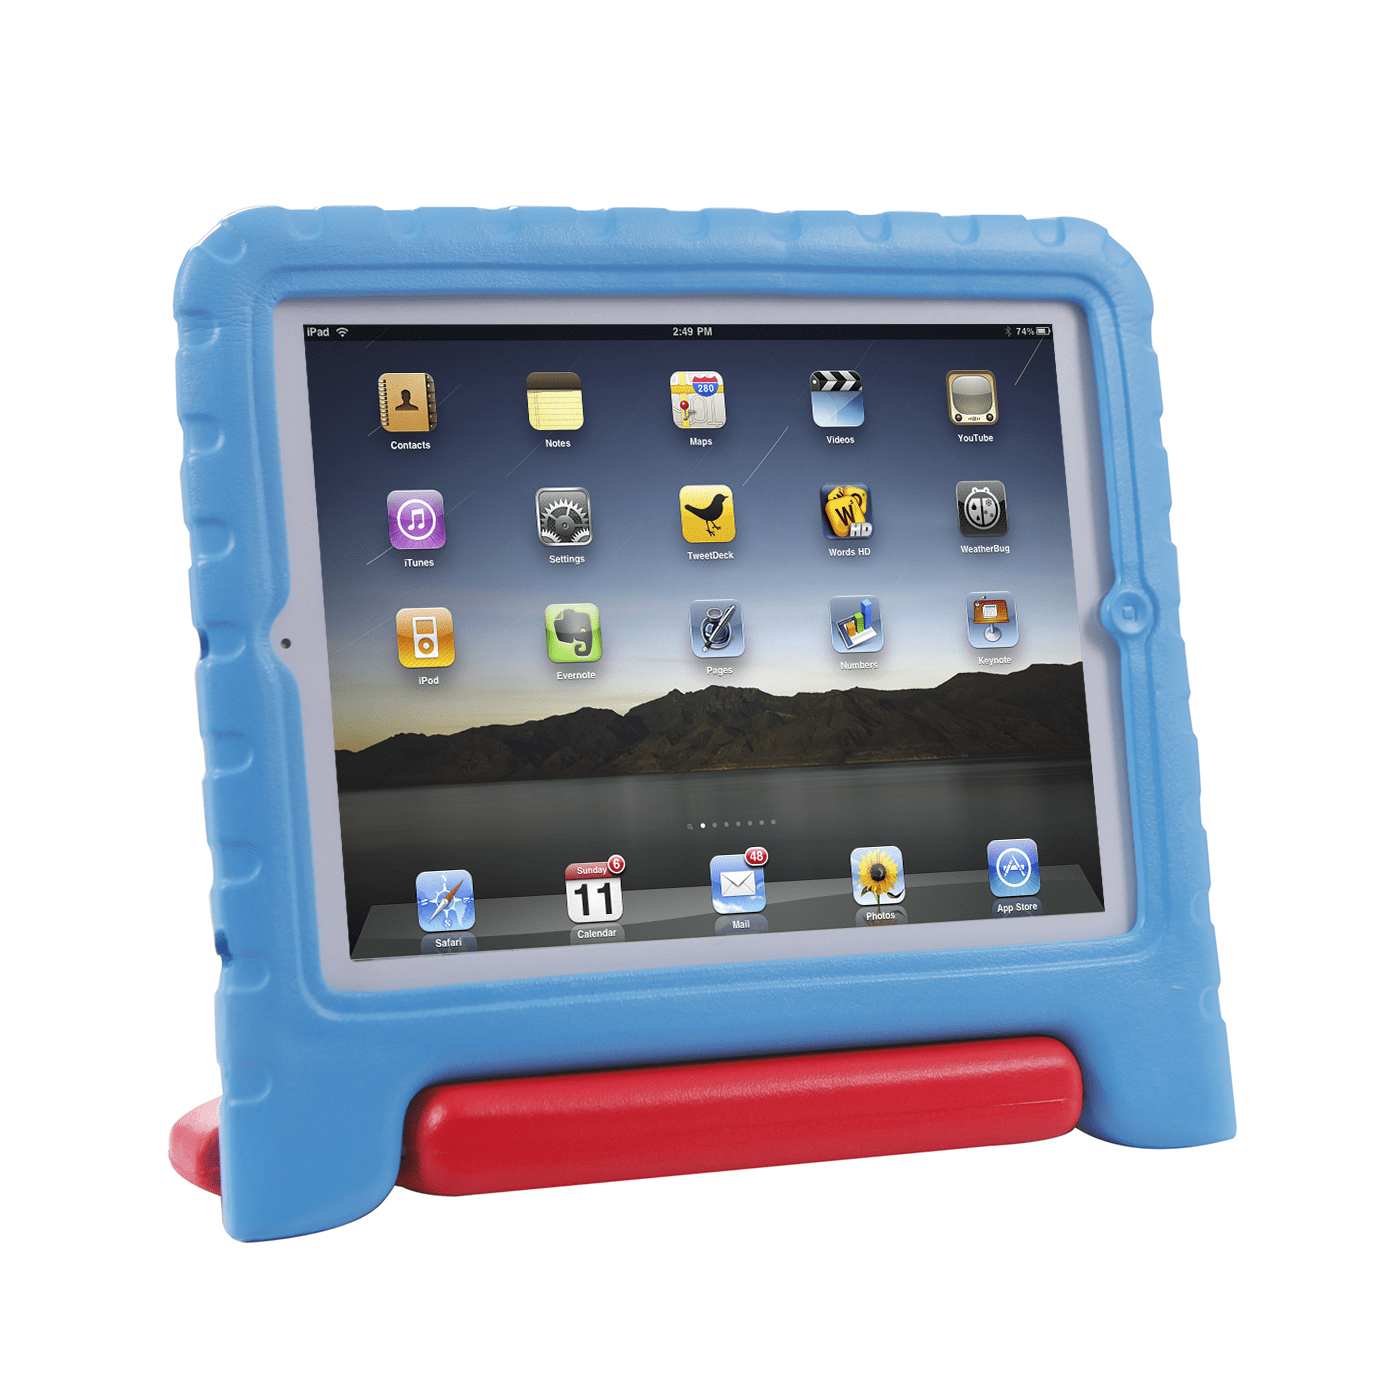 HDE iPad 2 3 4 Case for Kids - Rugged Heavy Duty Drop Proof Children Toy Protective Shockproof Cover Handle Stand for Apple iPad 2 3 4 (Blue & Red)